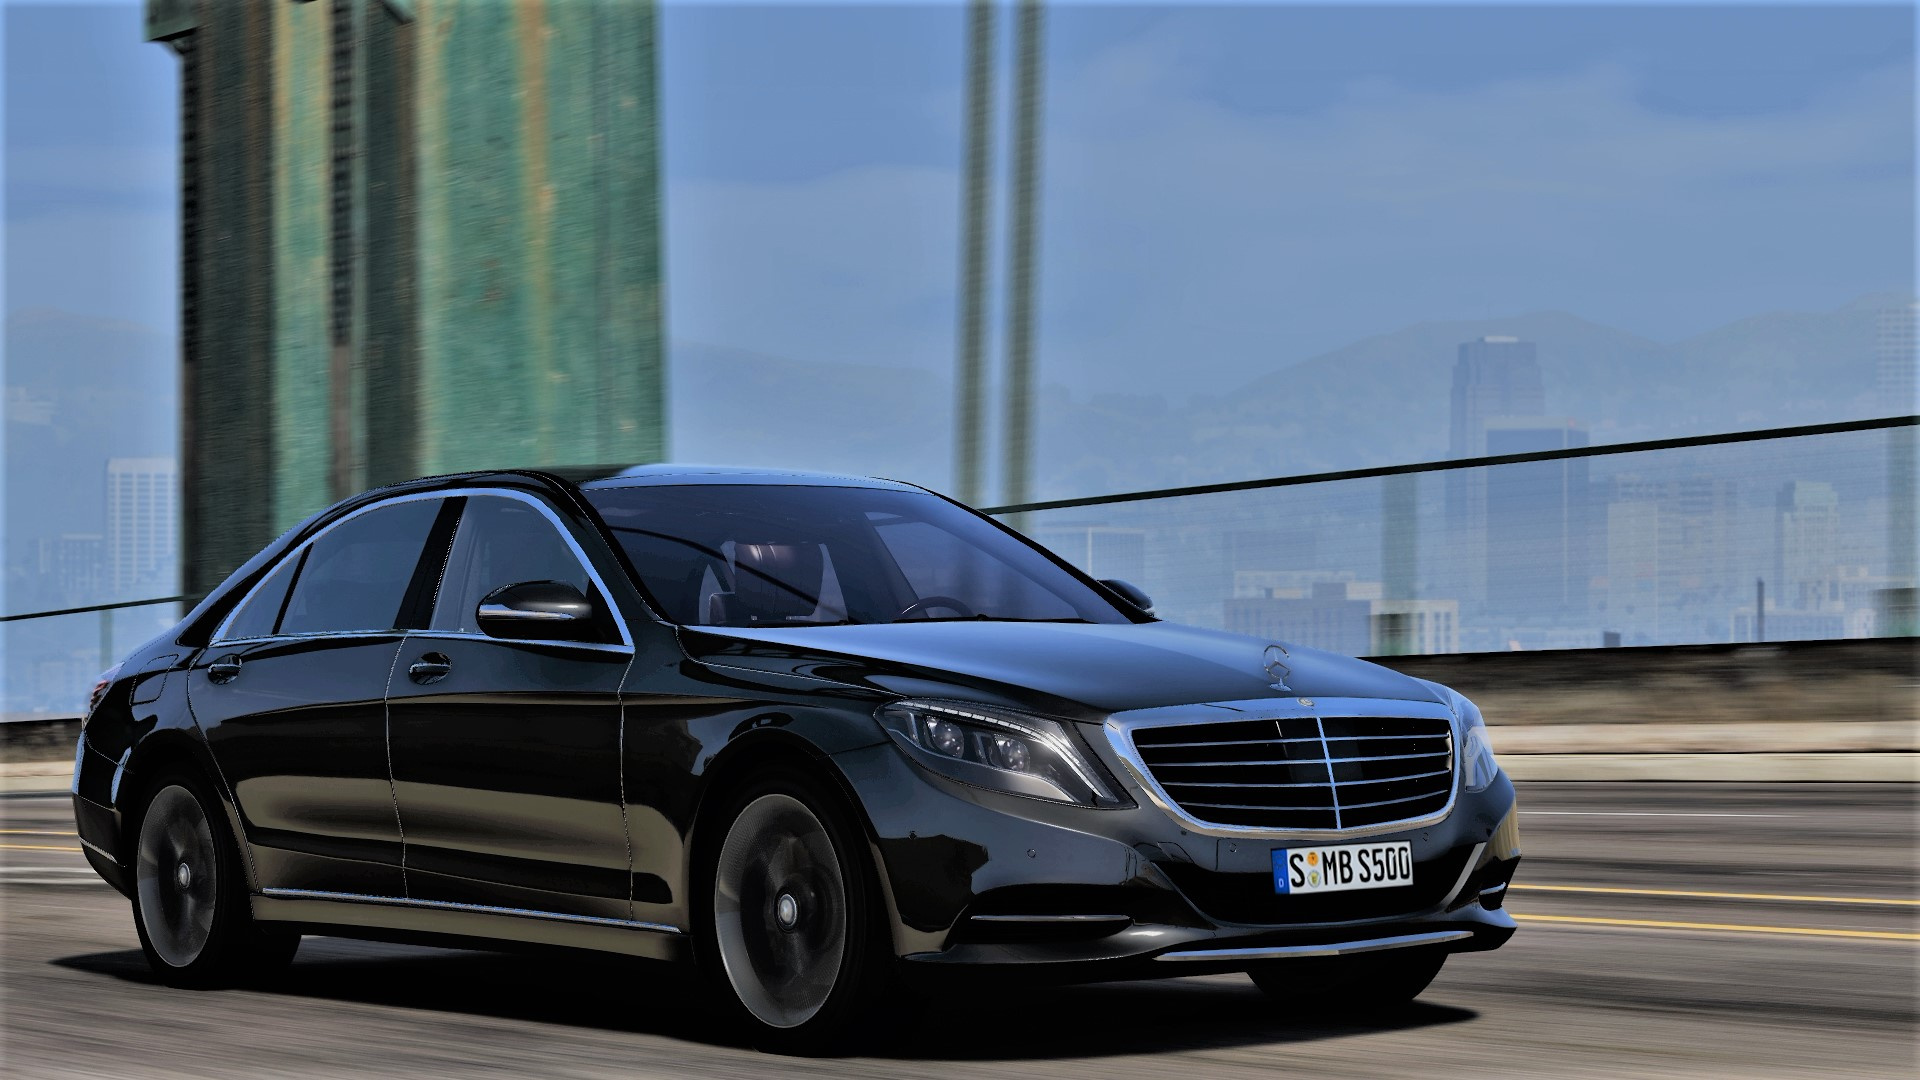 2014 mercedes benz s500 l s550 4matic w222 add on. Black Bedroom Furniture Sets. Home Design Ideas